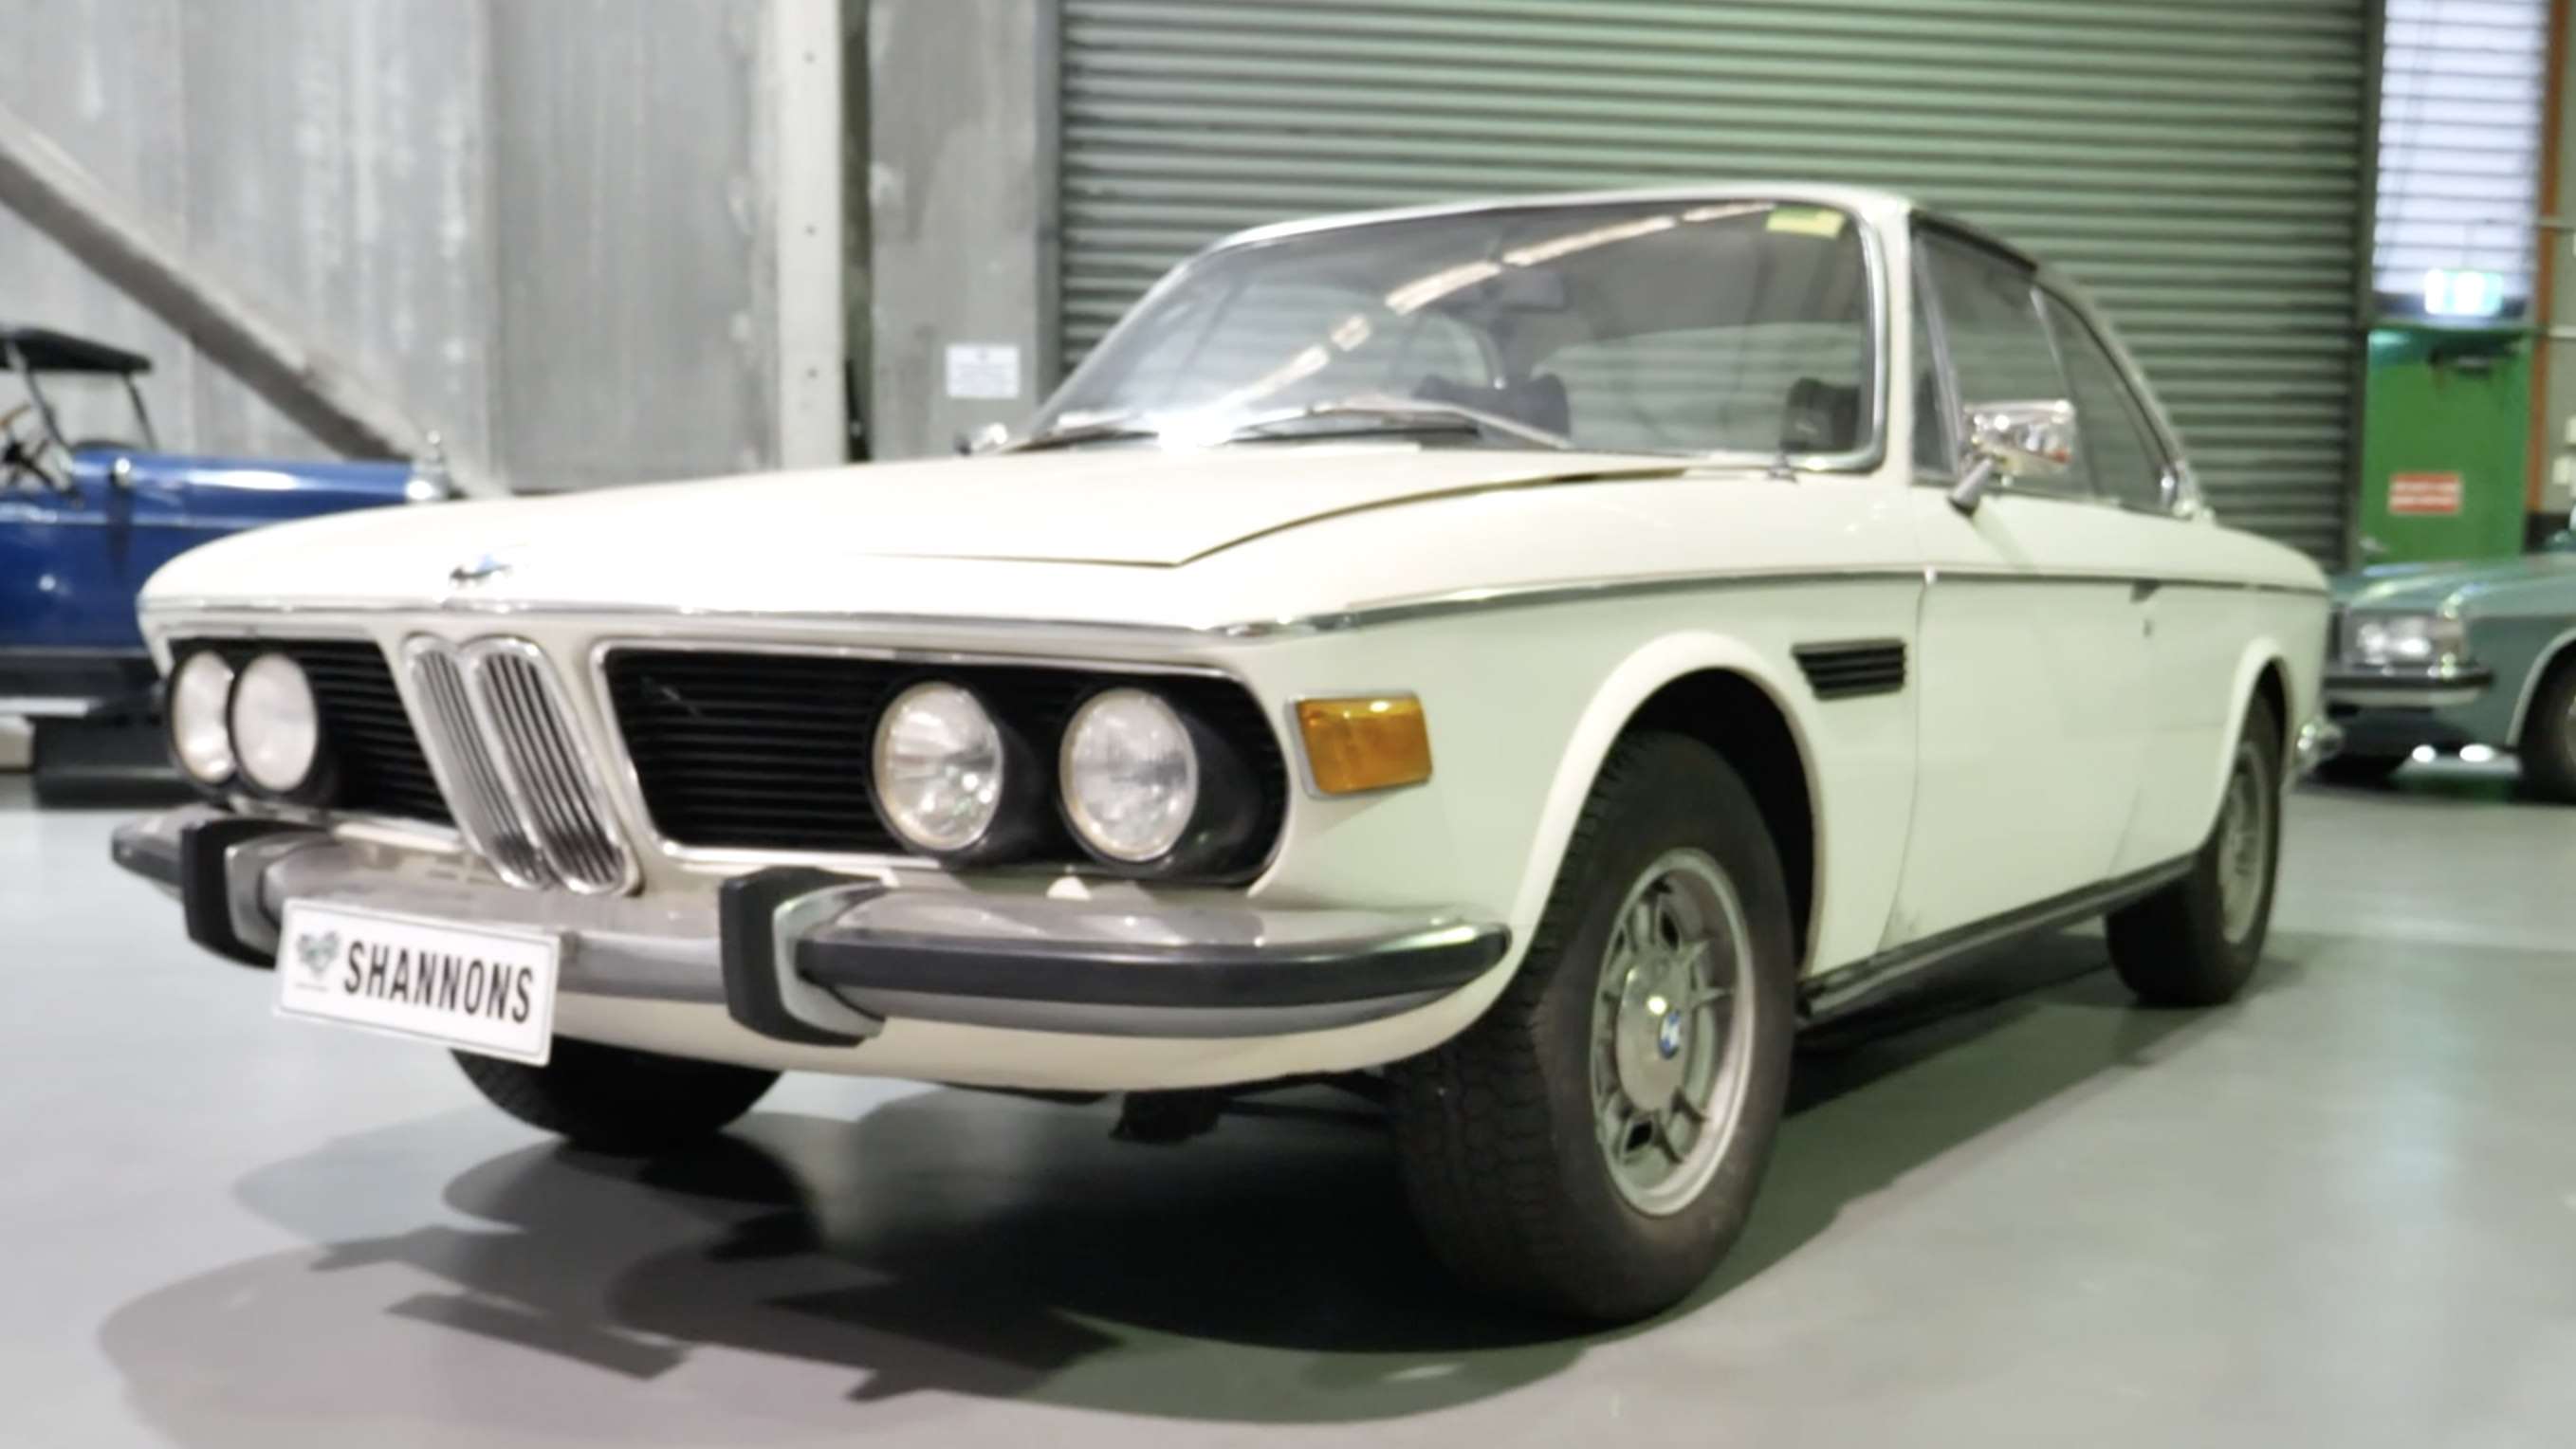 1972 BMW 3.0 CS 'Automatic' Coupe (Project) - 2020 Shannons Spring Timed Online Auction